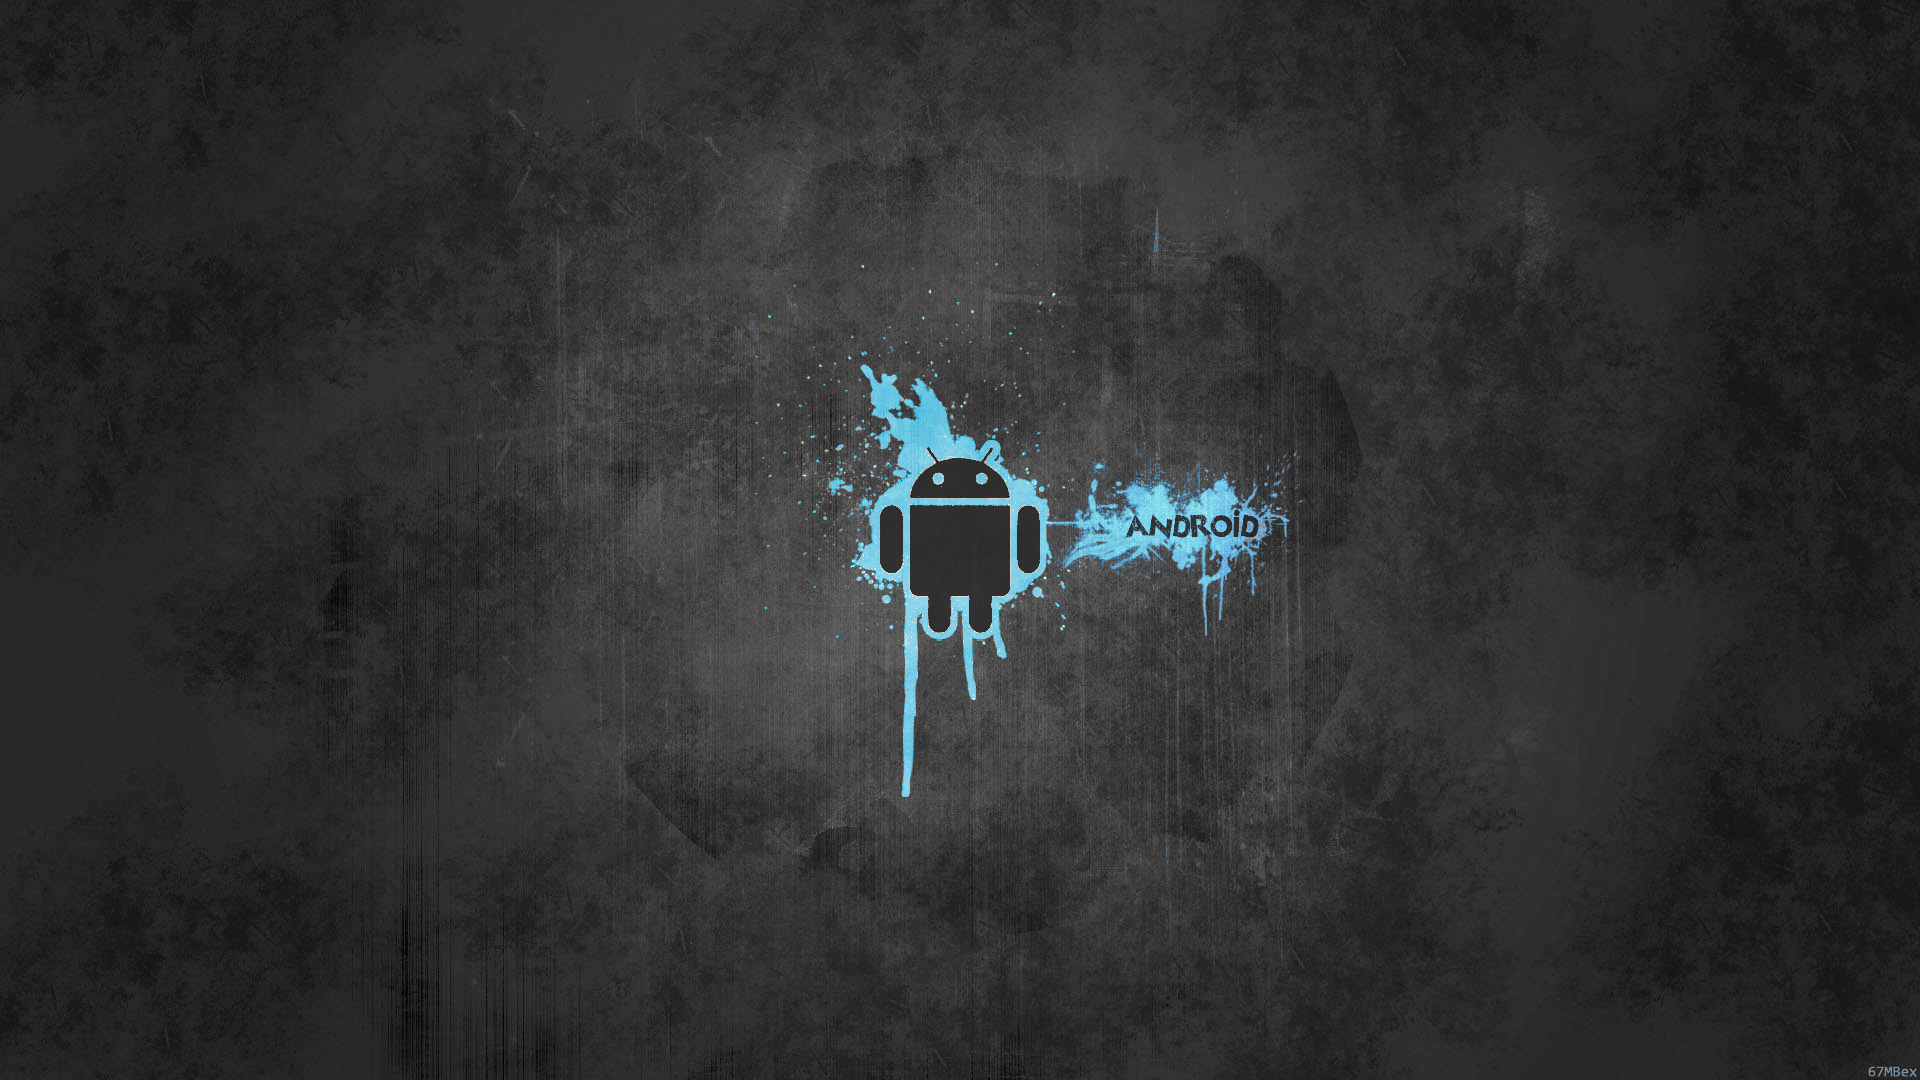 Here is Android wallpaper. My uncle really loves Android wallpaper and is always looking for new ideas to use on his computer.